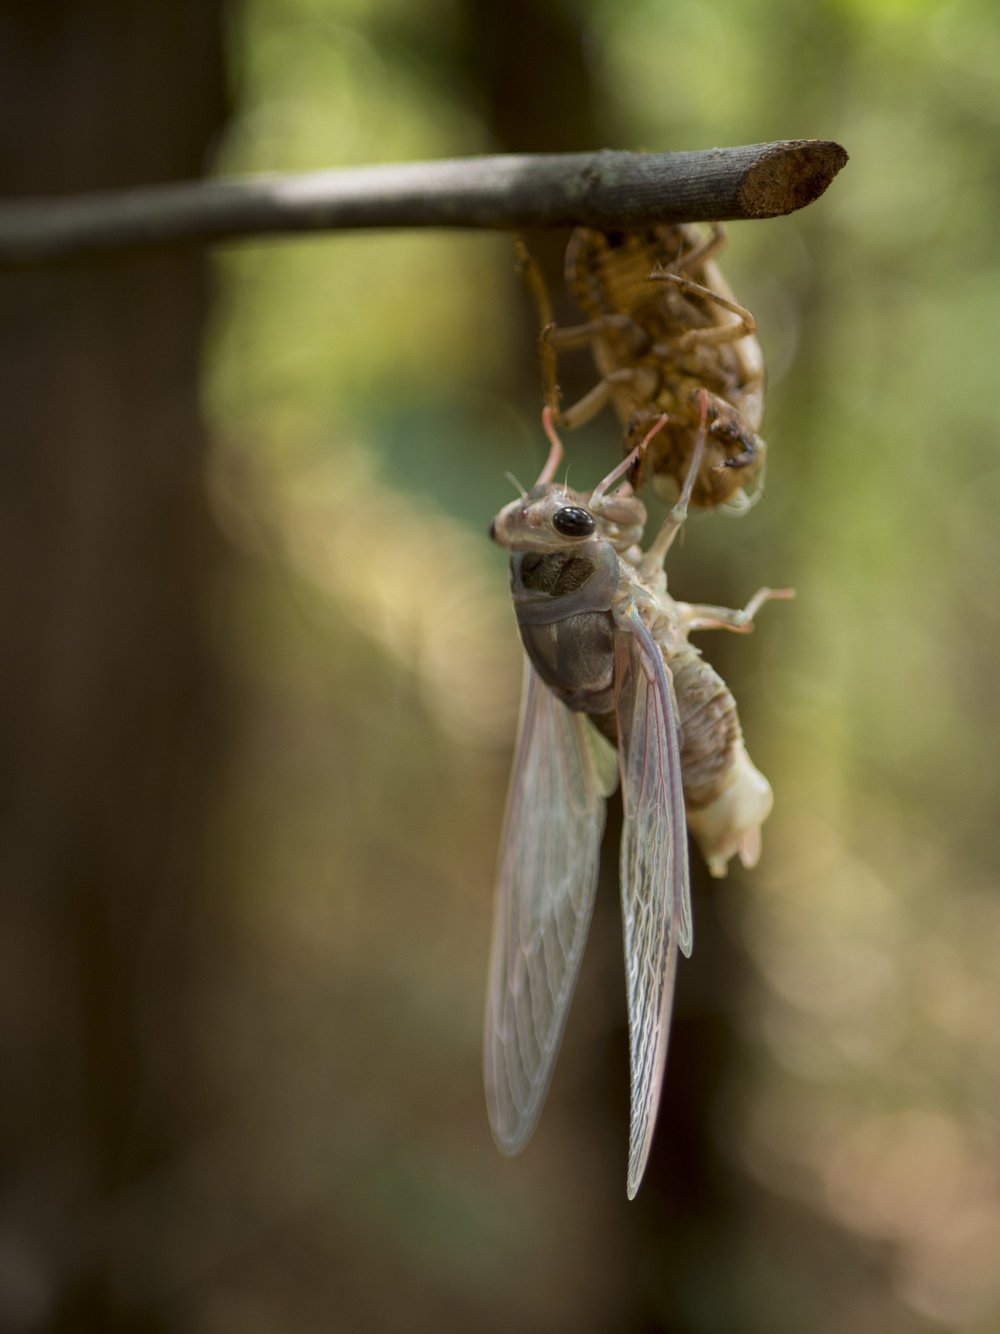 Cicada getting its wings